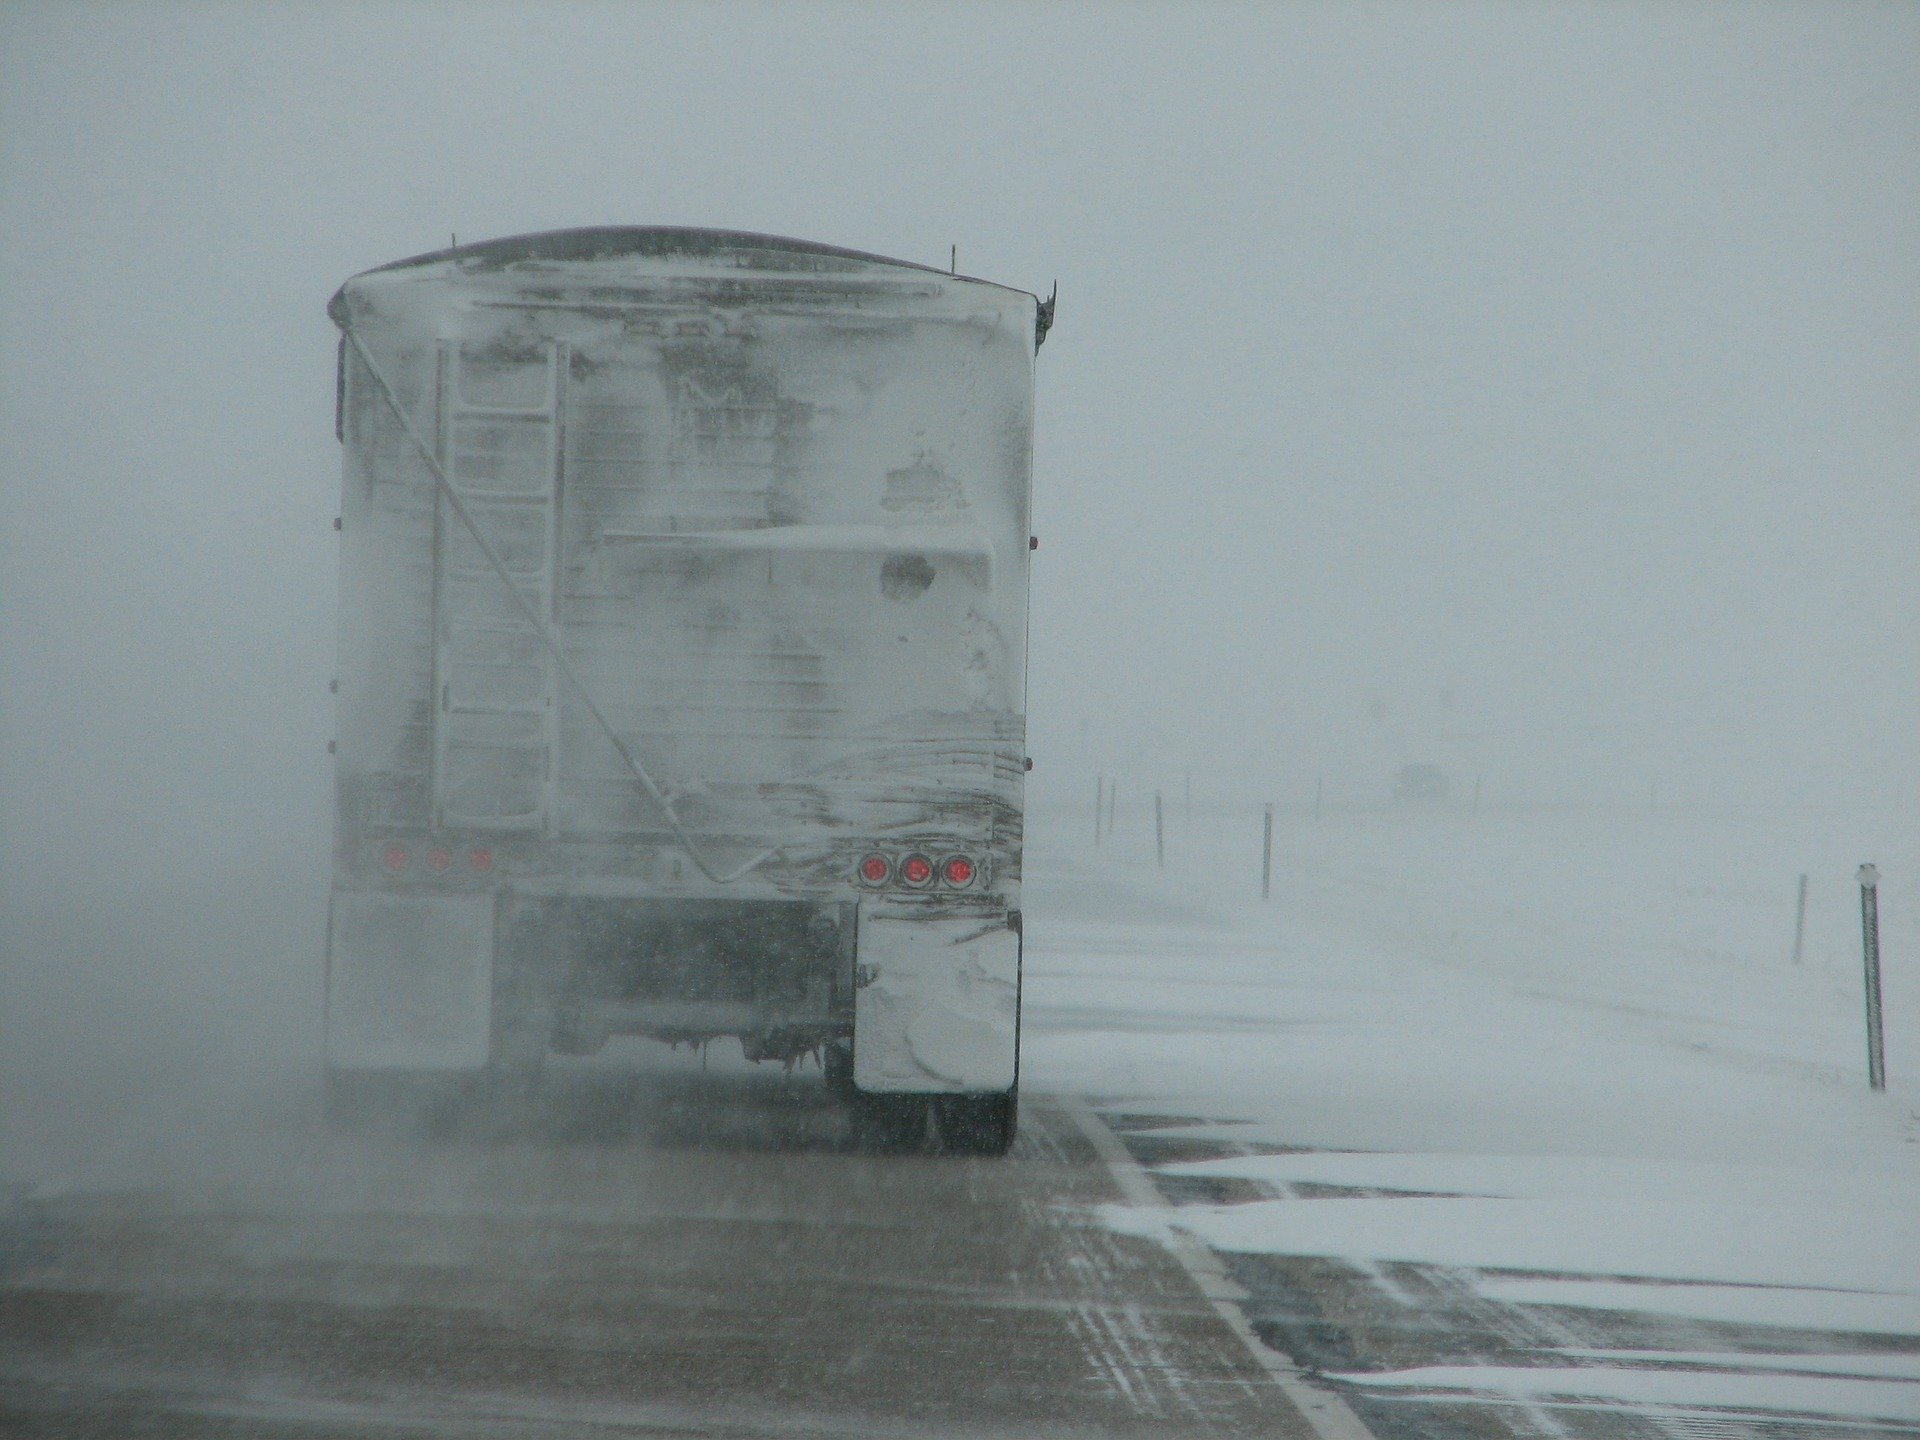 Pictured - A truck driving in the storm weather conditions | Source: Pixabay